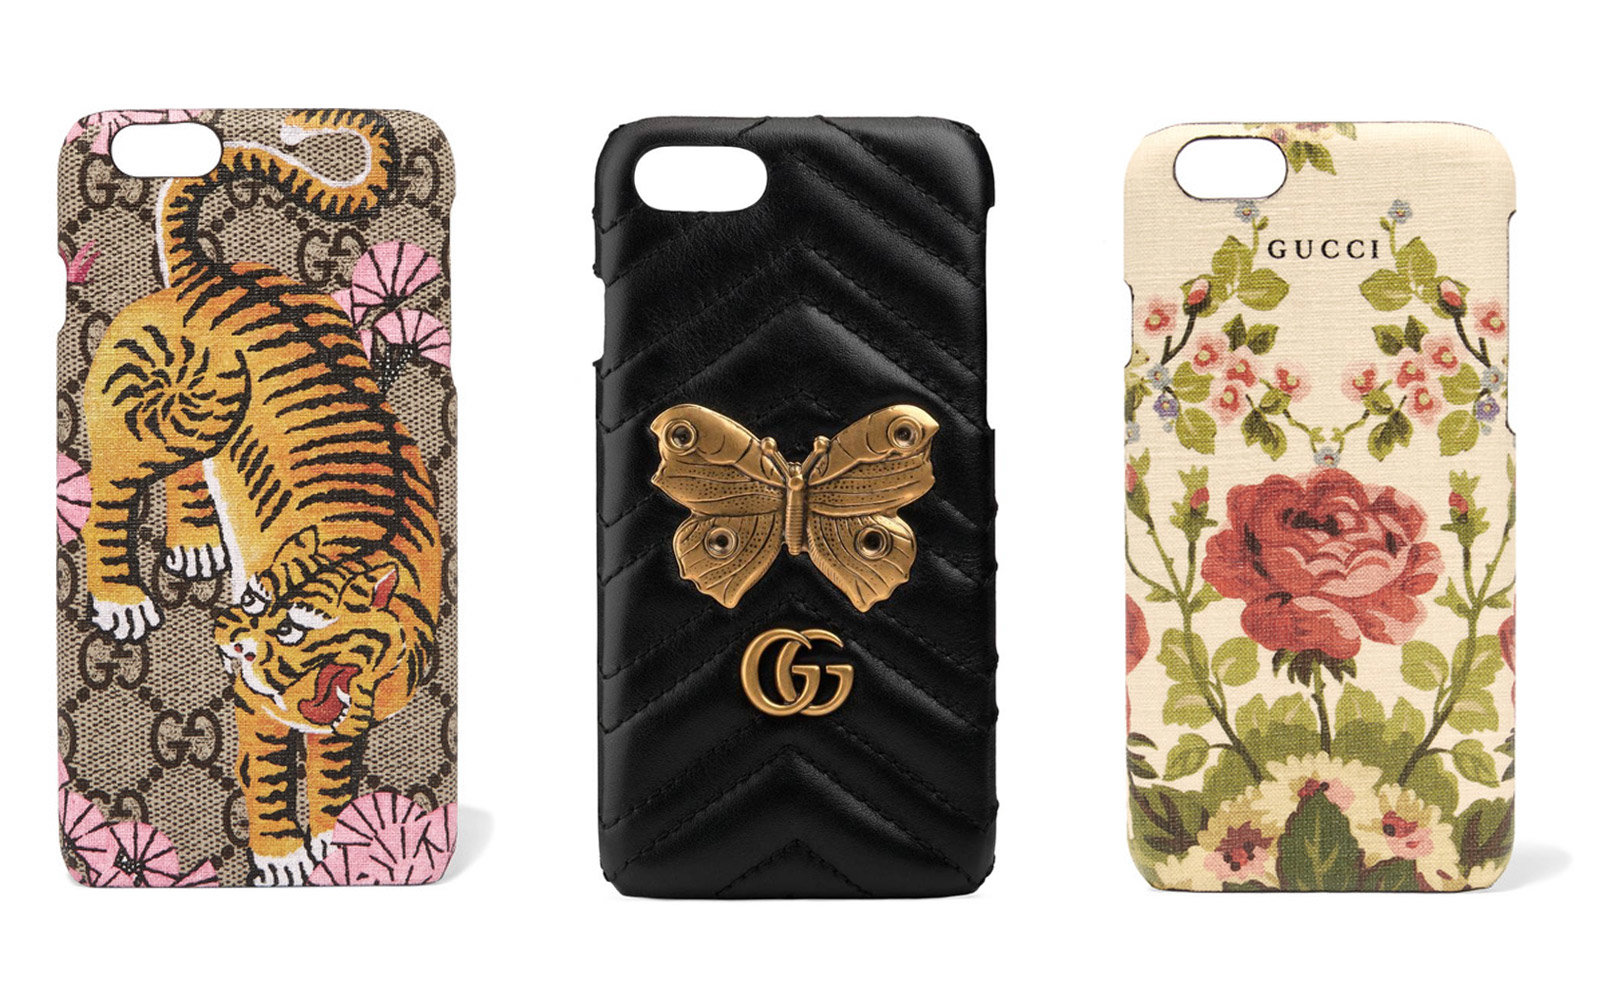 gucci-phone-cases-GUCCICASE0917.jpg